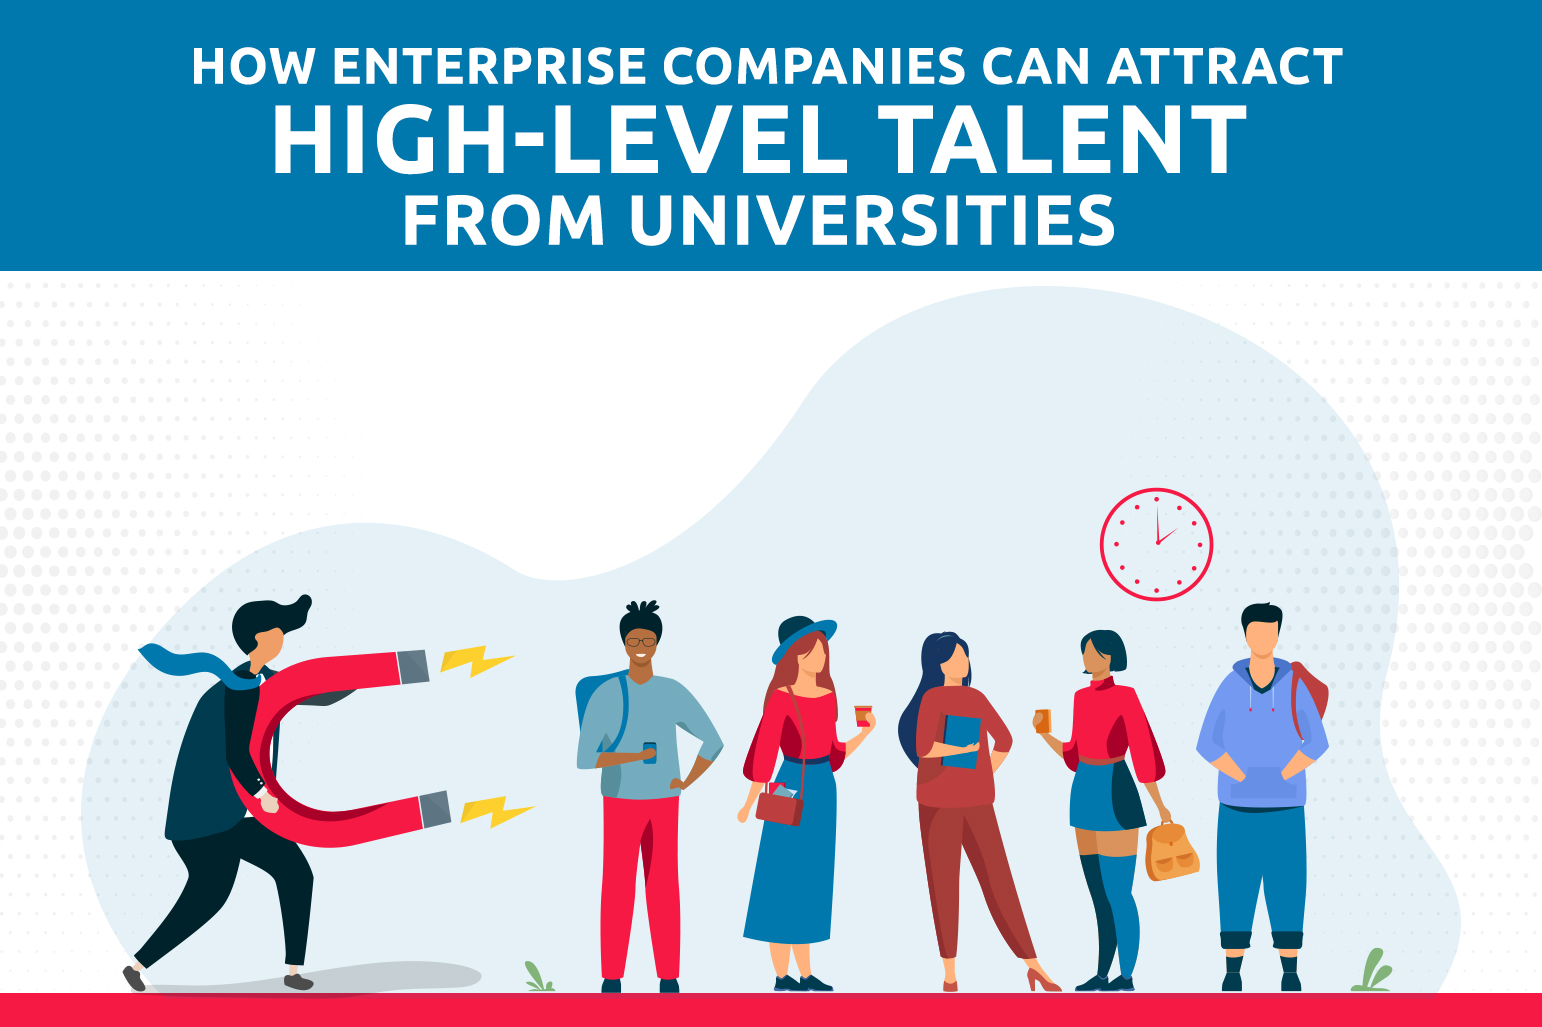 How Enterprise Companies Can Attract High Level Talent From Universities